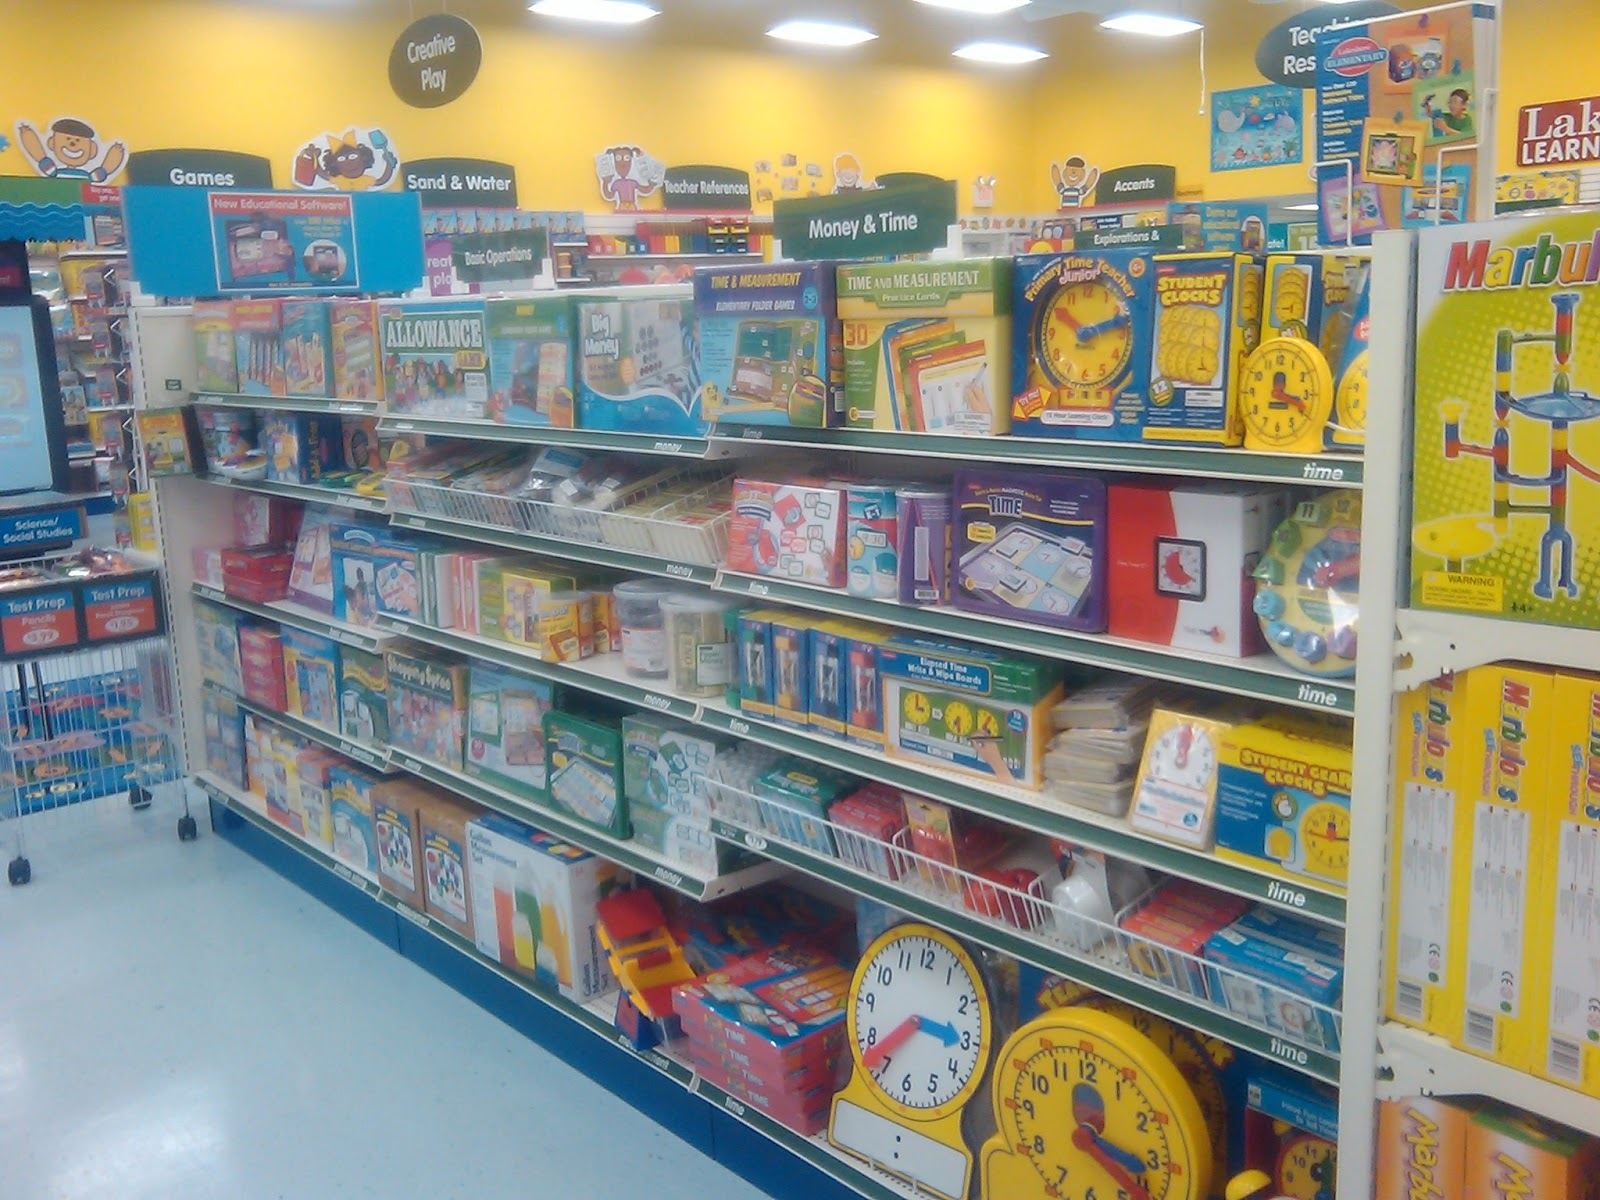 picture relating to Lakeshore Learning Printable Coupons called Lakeshore Discovering